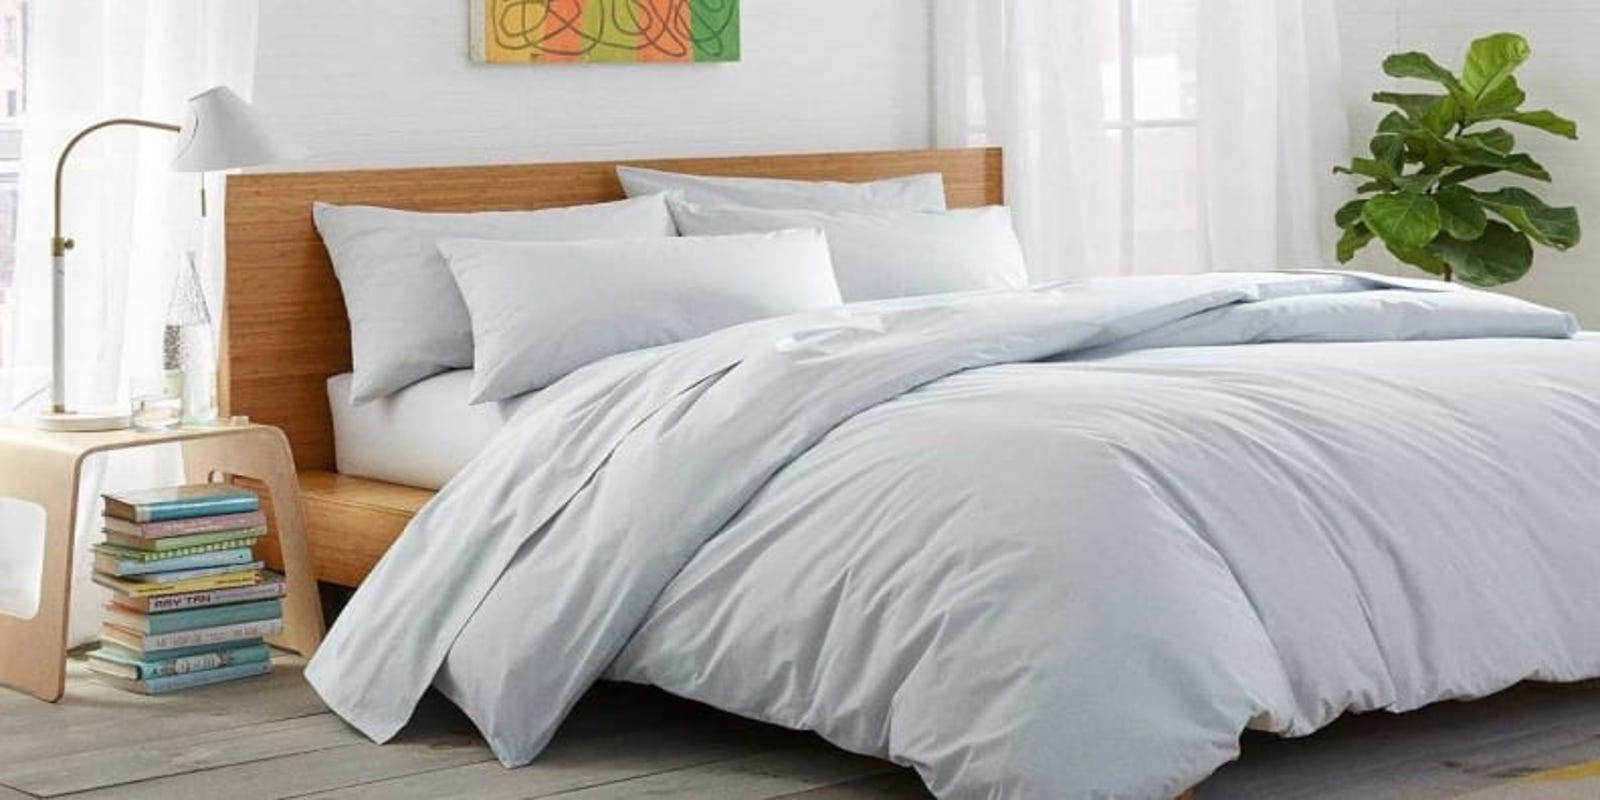 Brooklinen sheets: Get a major discount on the softest bedding ever